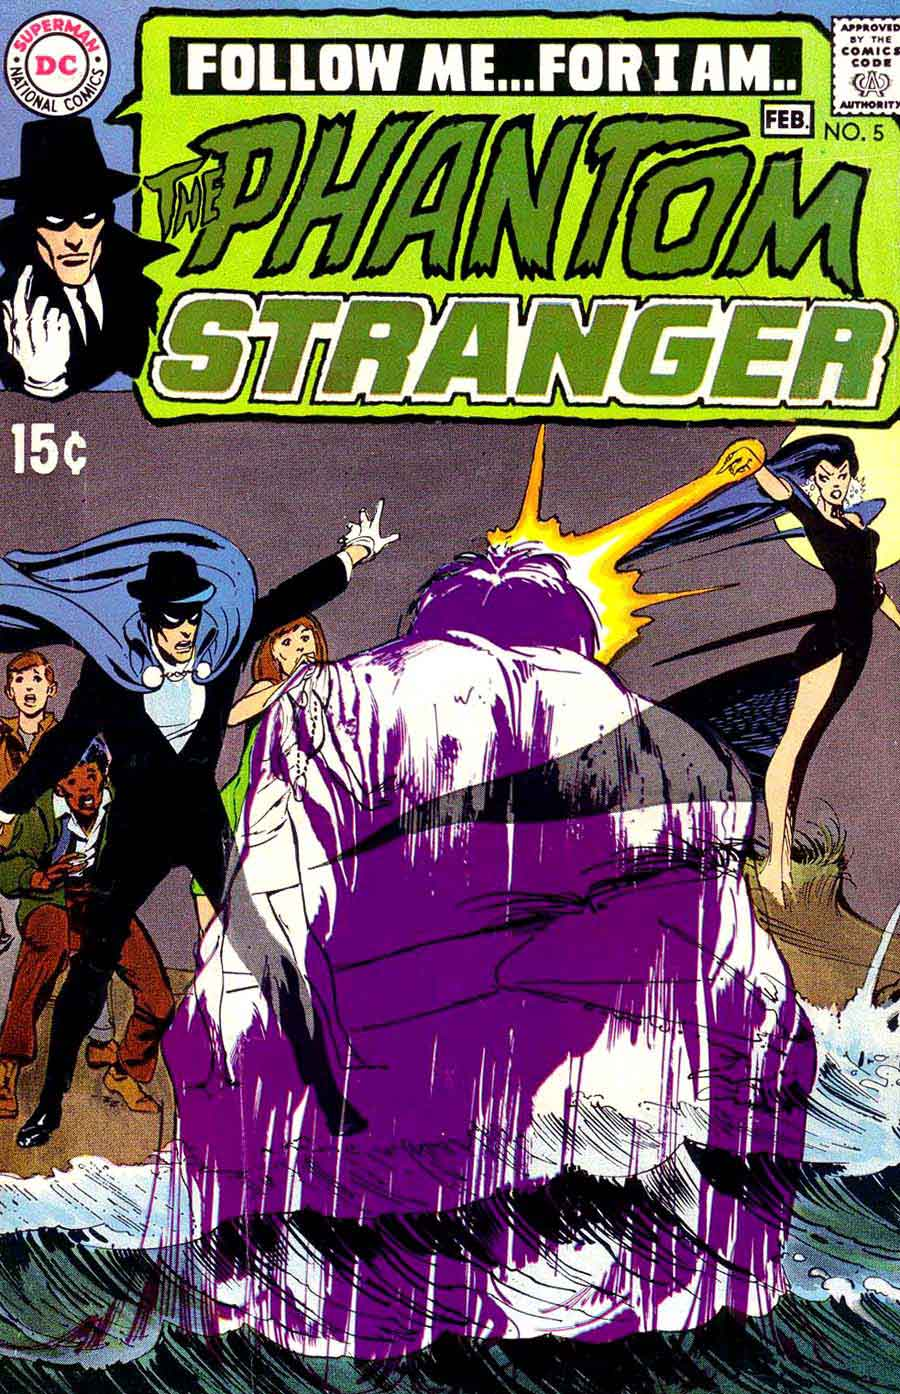 Phantom Stranger #5 - 1970s dc horror comic book cover art by Neal Adams